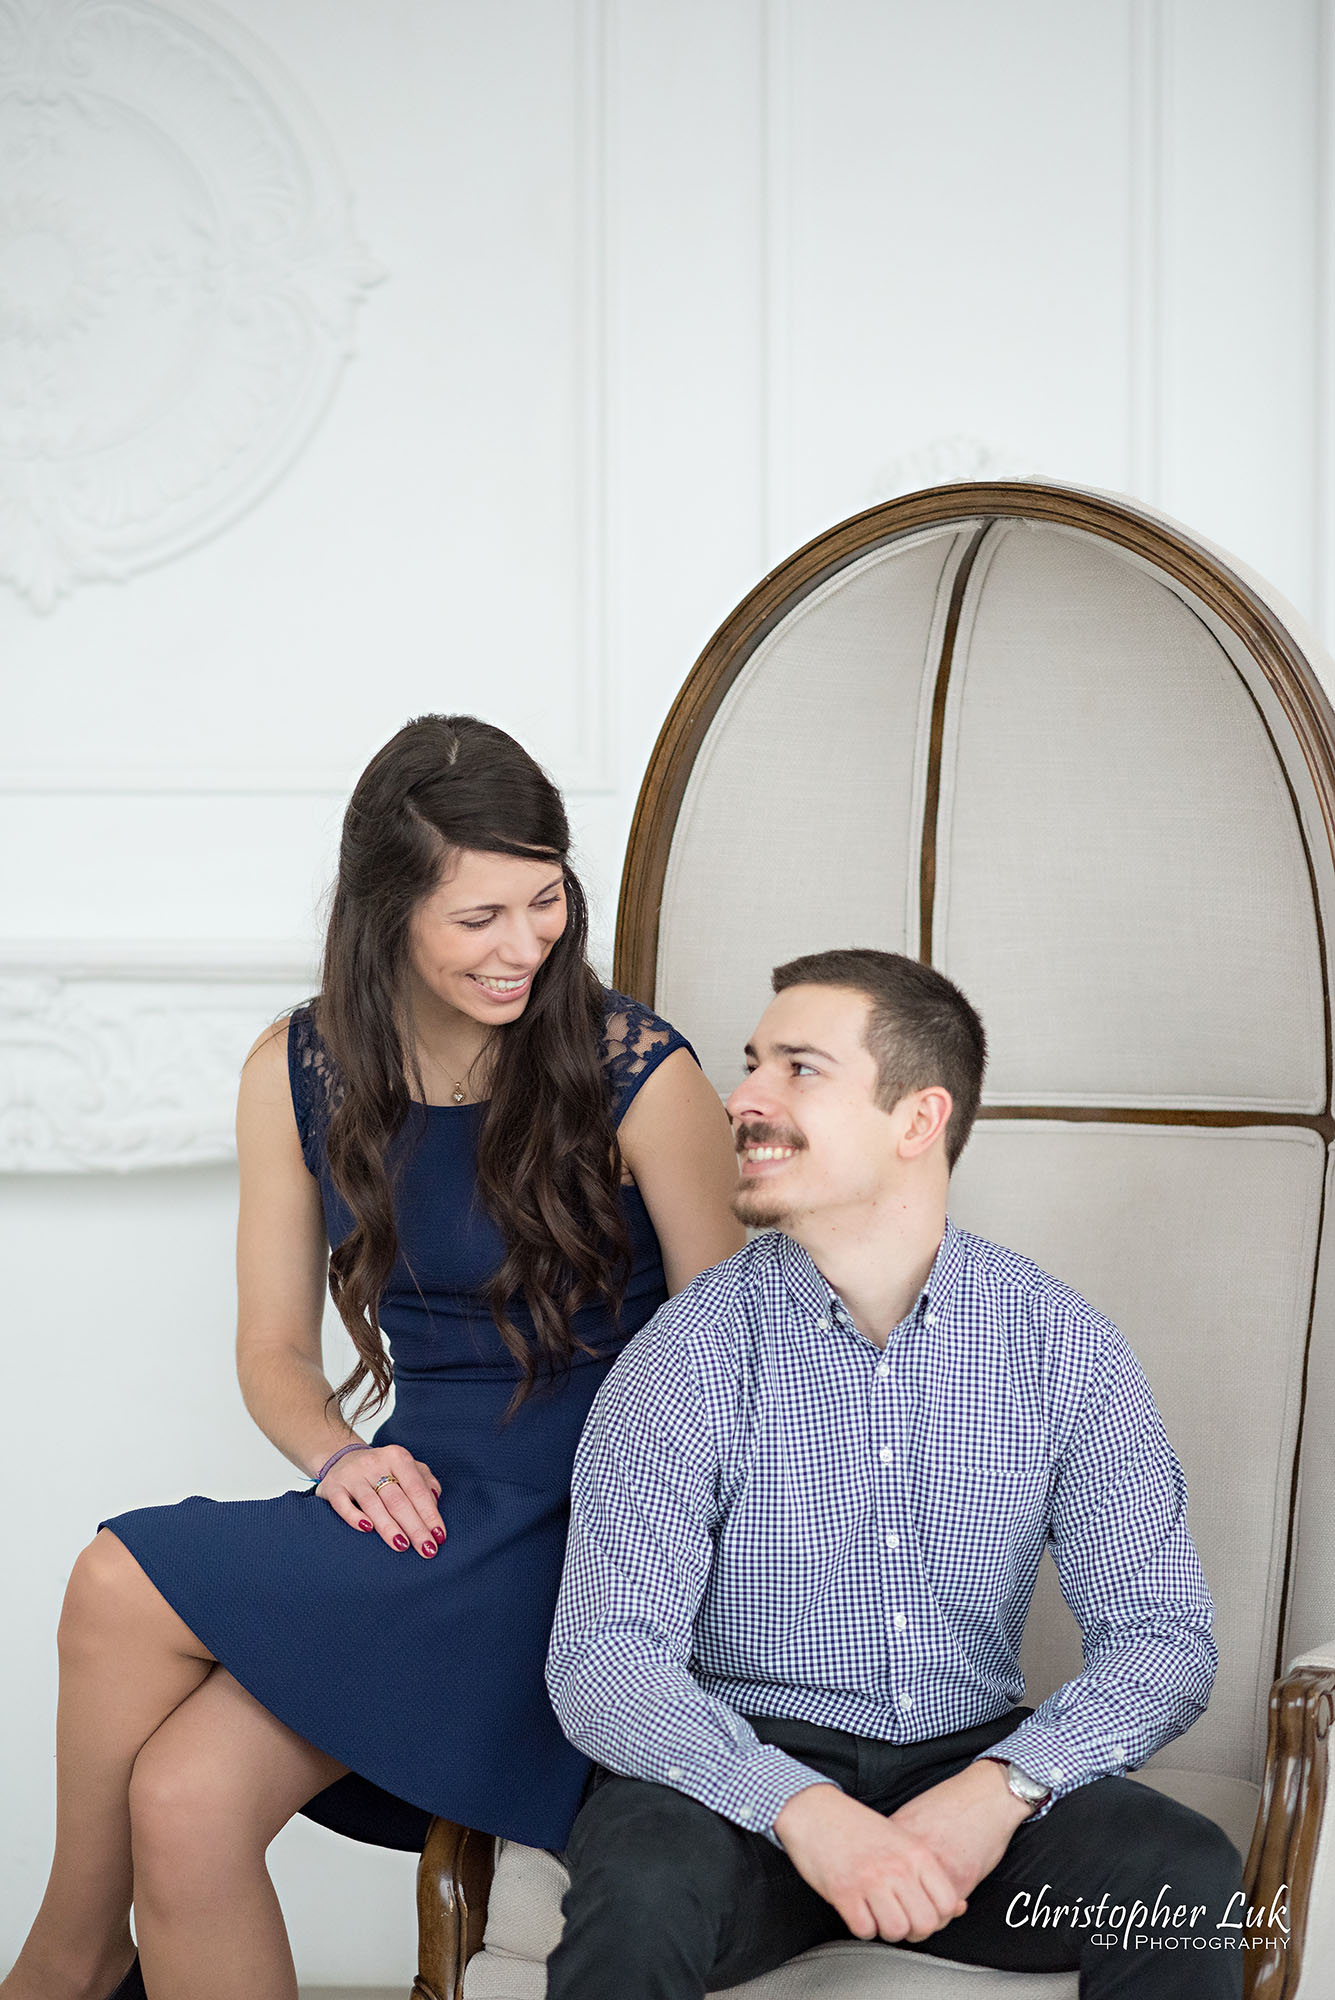 Christopher Luk Toronto Wedding Photographer Mint Room Studios Conservatory Engagement Session Winter Indoor Natural Light Candid Photojournalistic Bride Groom Beige Dome Chair Smile Portrait